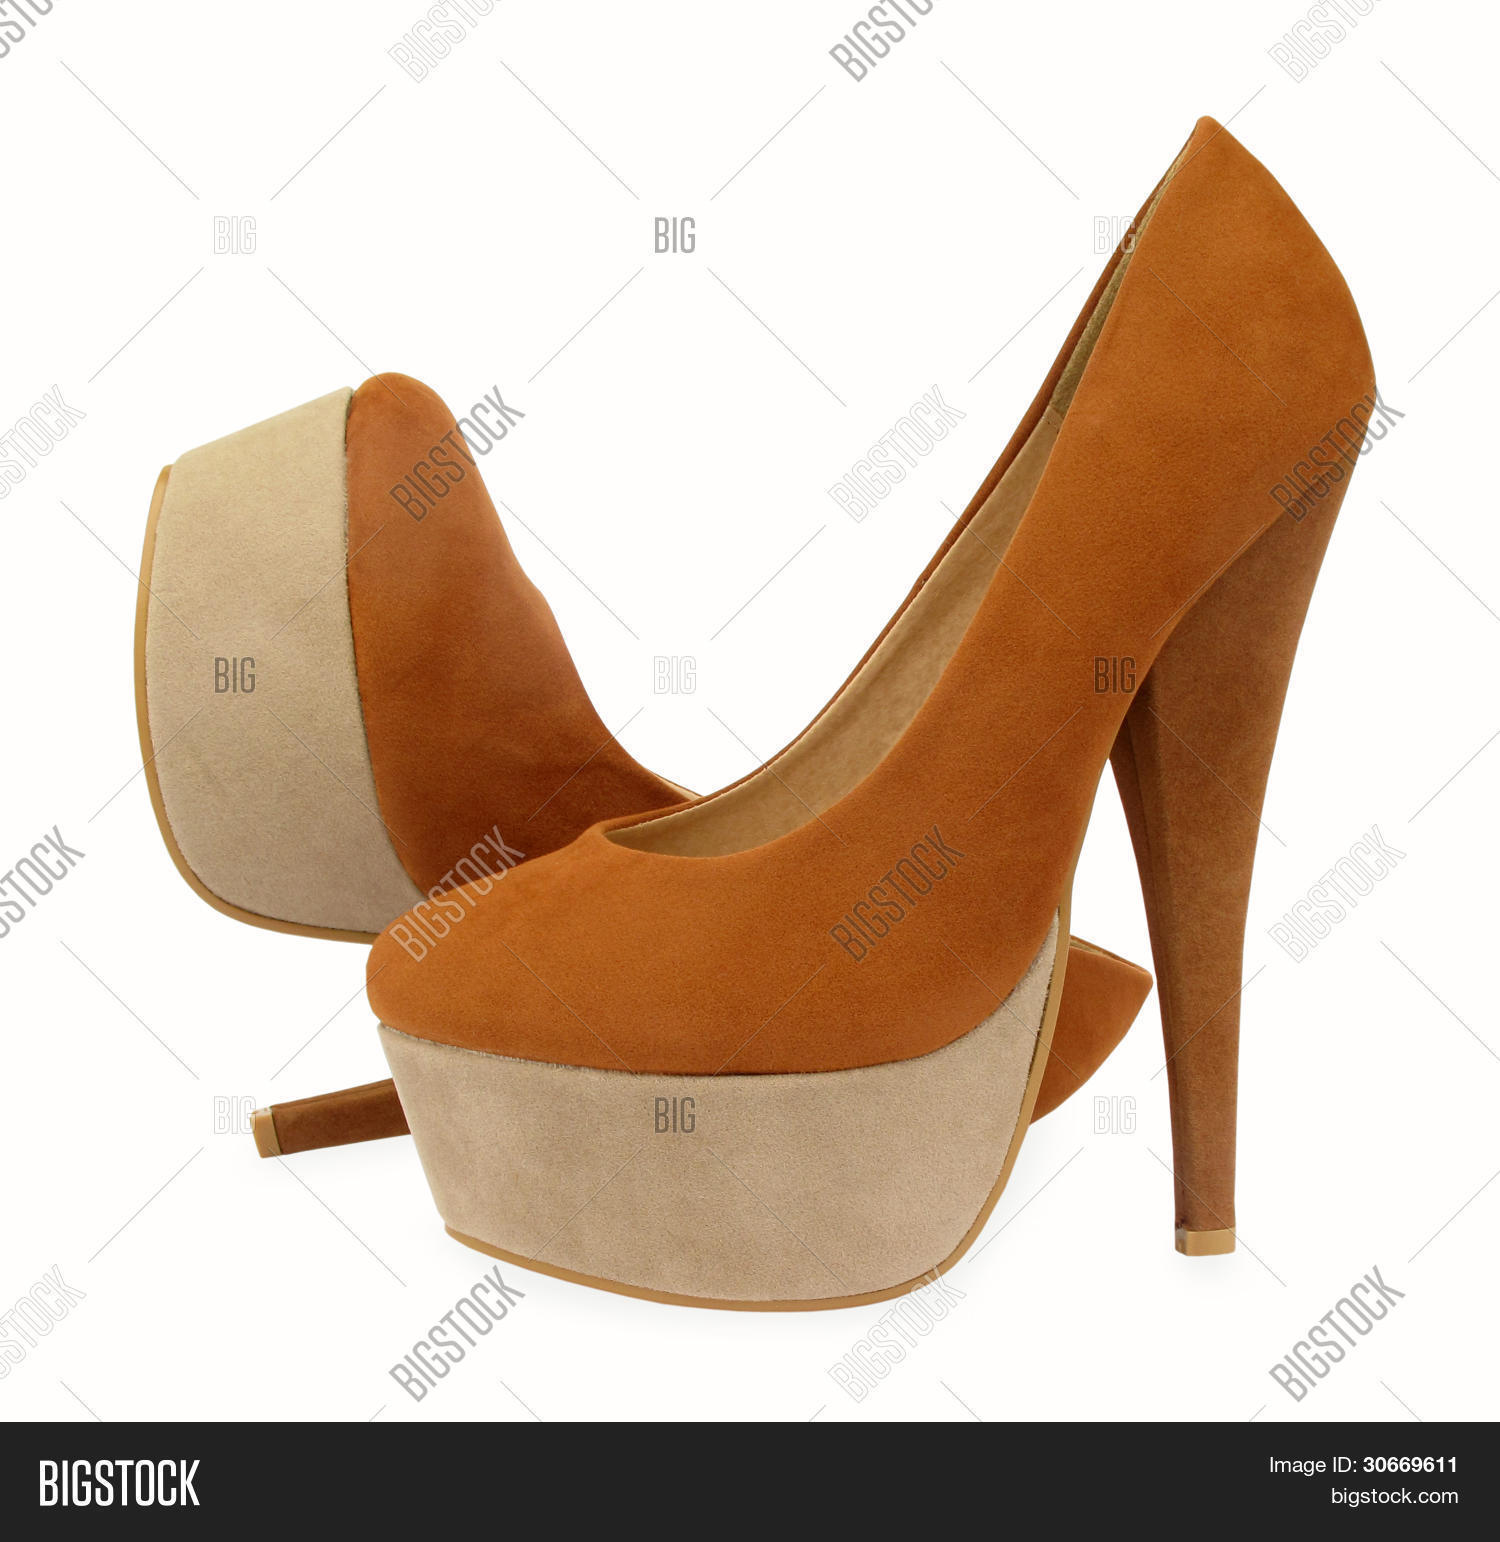 Brown and beige high heels pump shoes Stock Photo & Stock Images ...